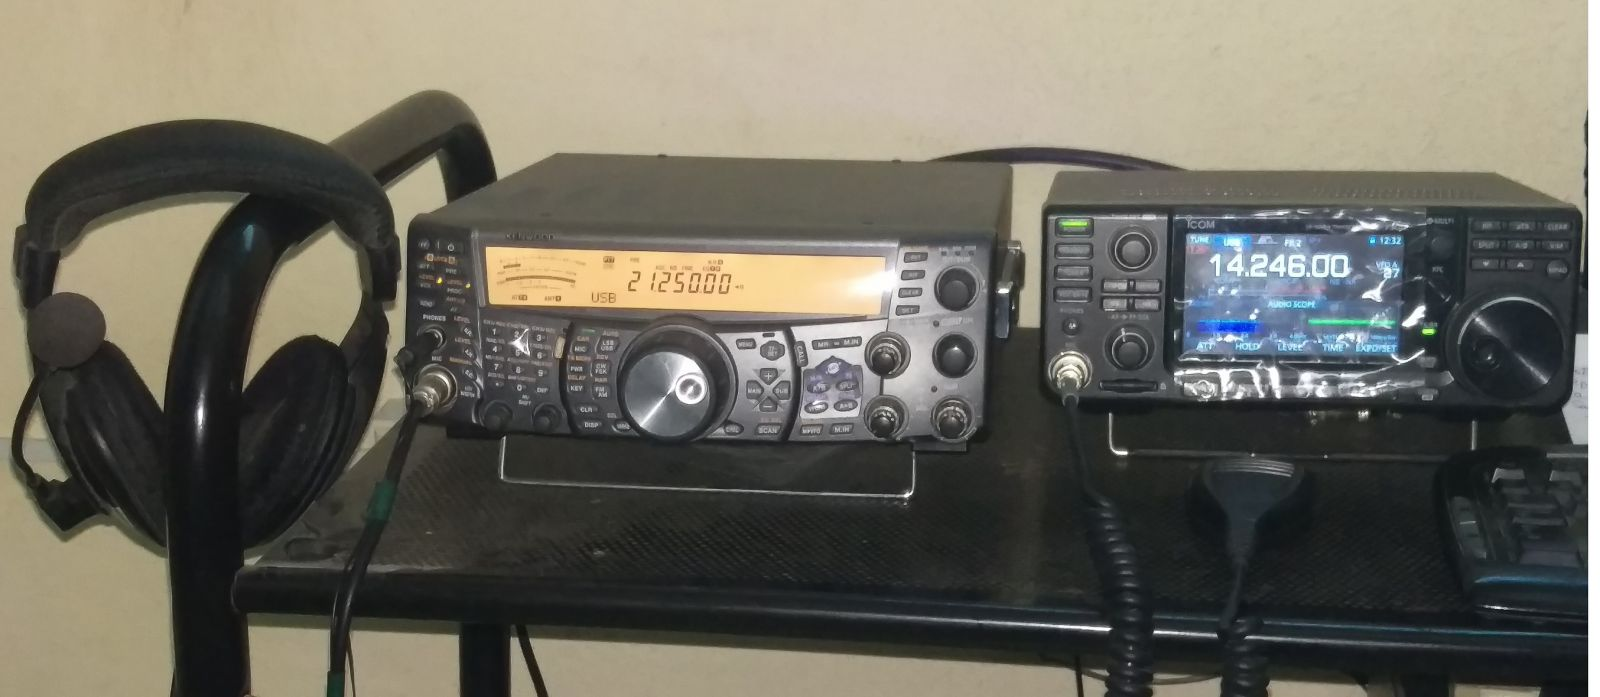 This is my Kenwood TS2000 and Icom IC 7300